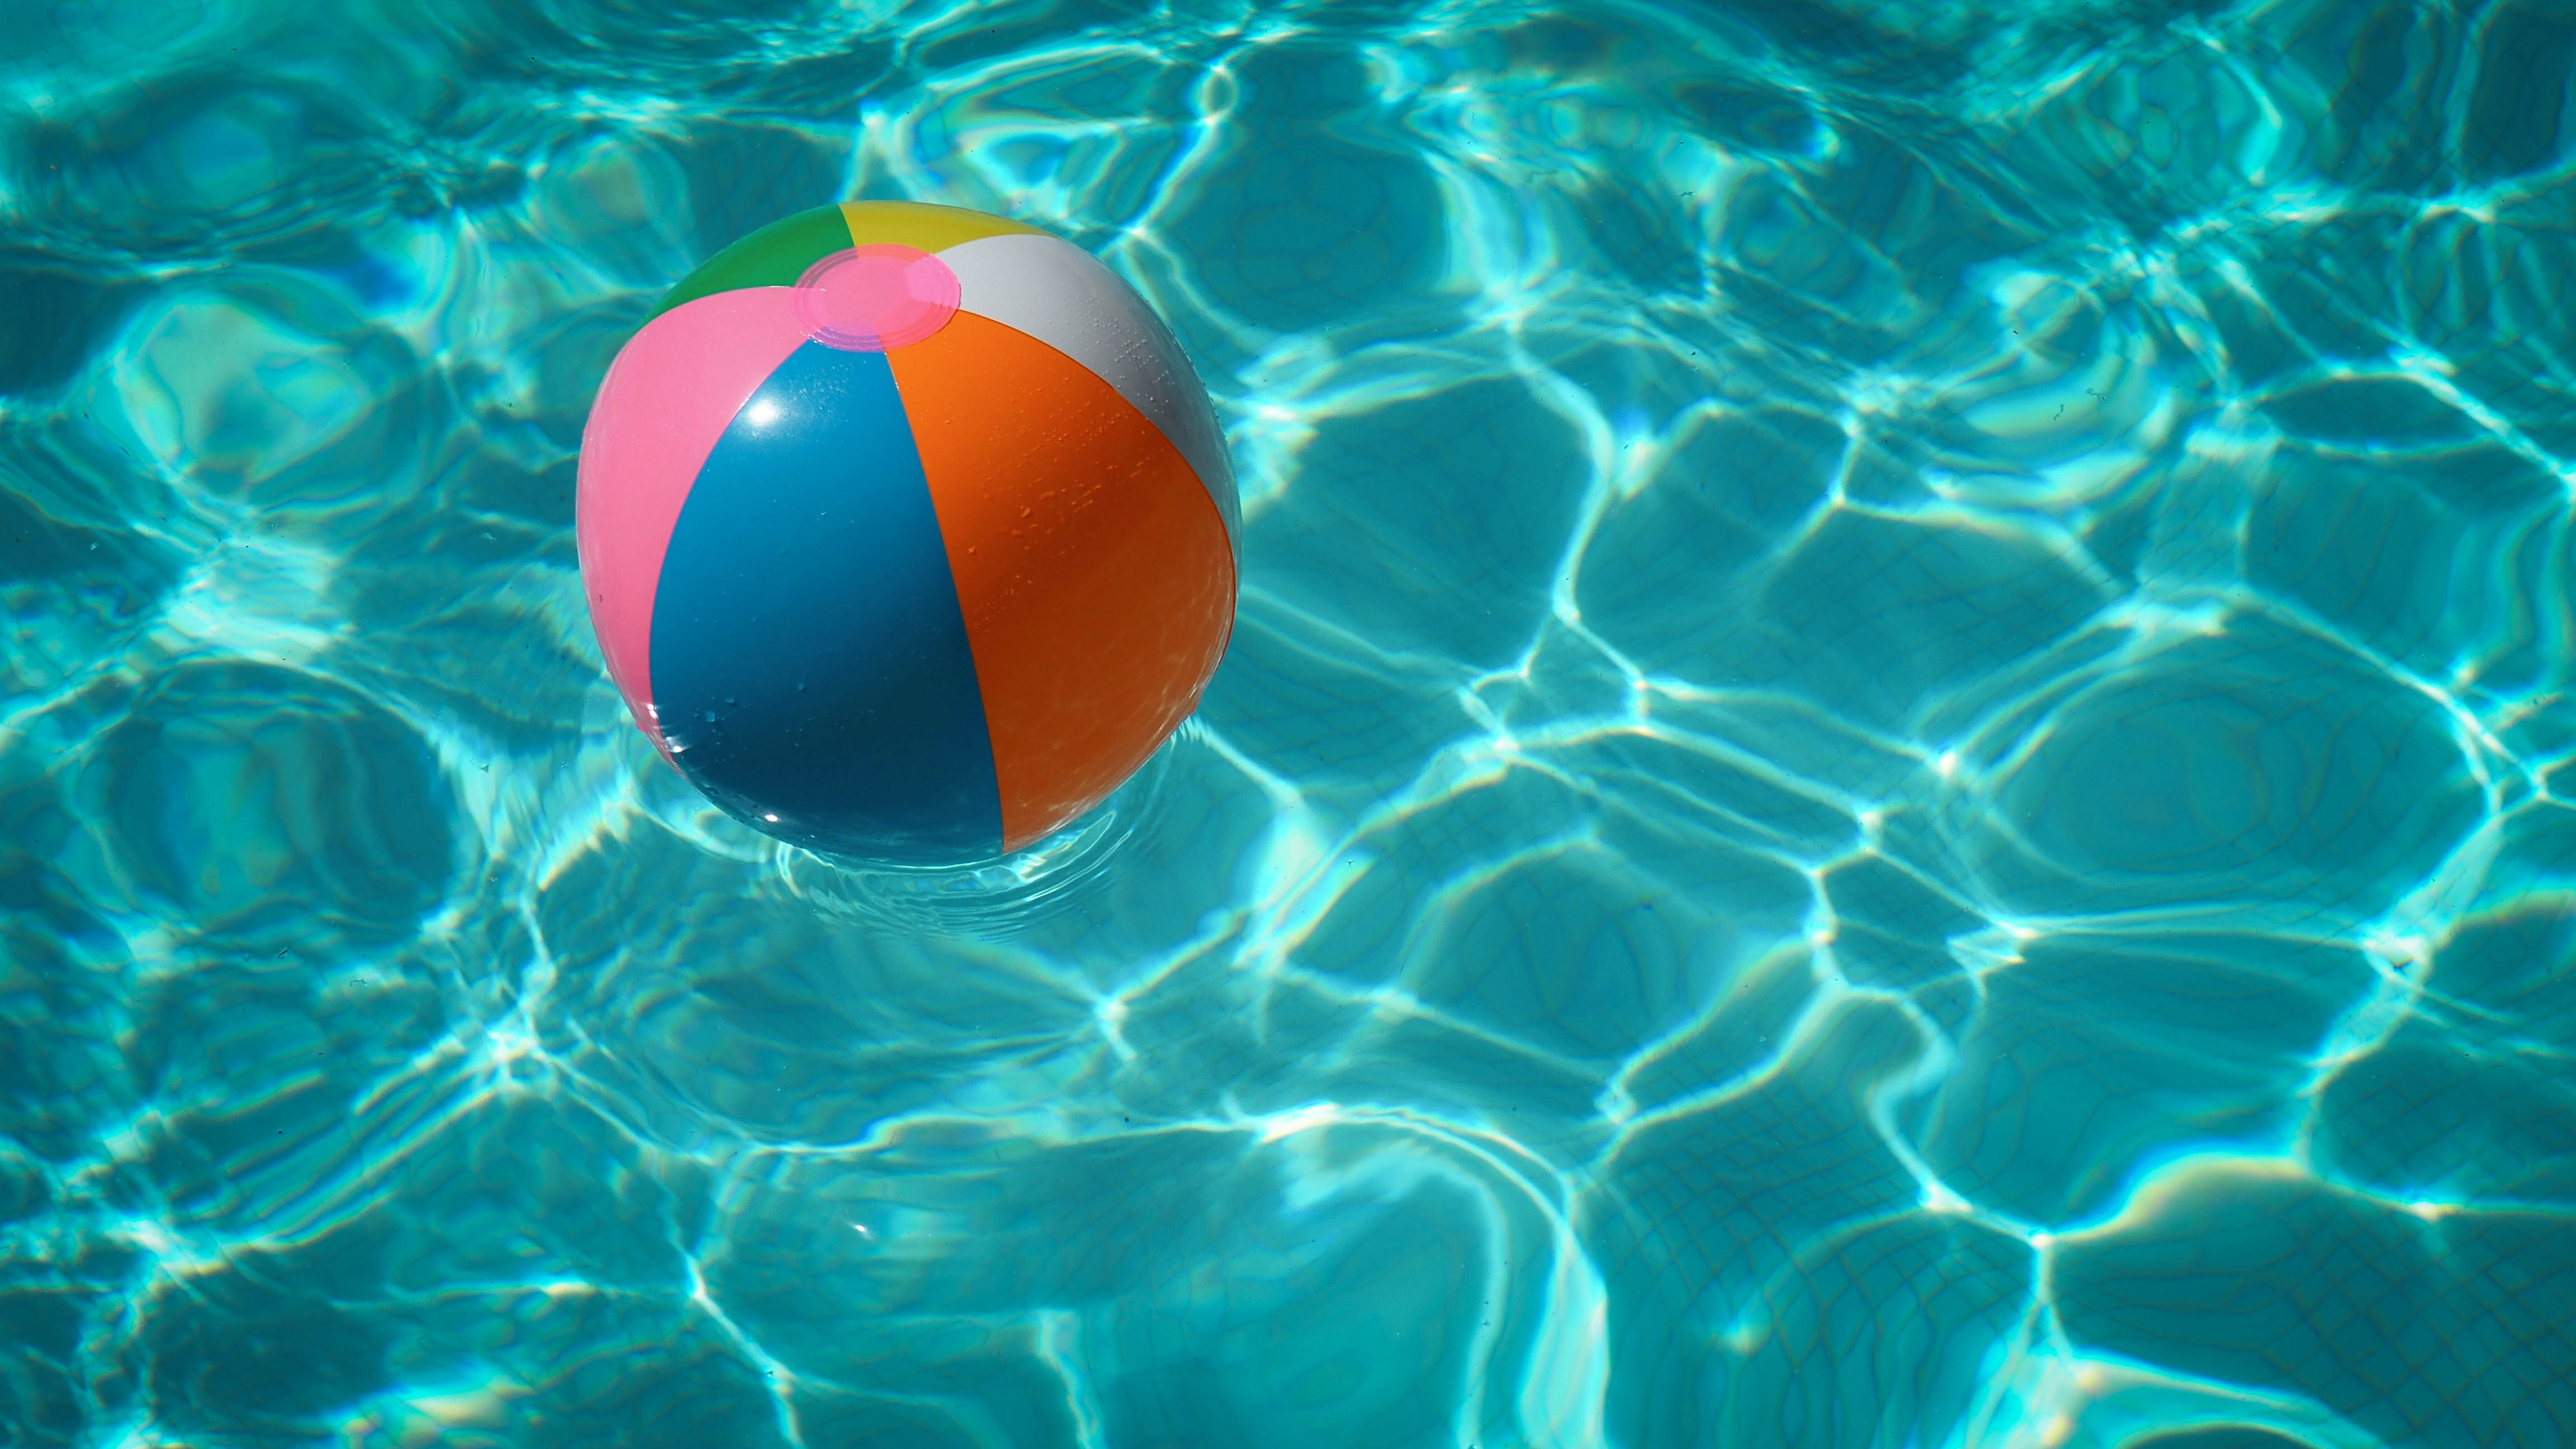 A multi-colored beach ball floats in the pool. Photo courtesy of Raphaël Biscaldi on Unsplash.